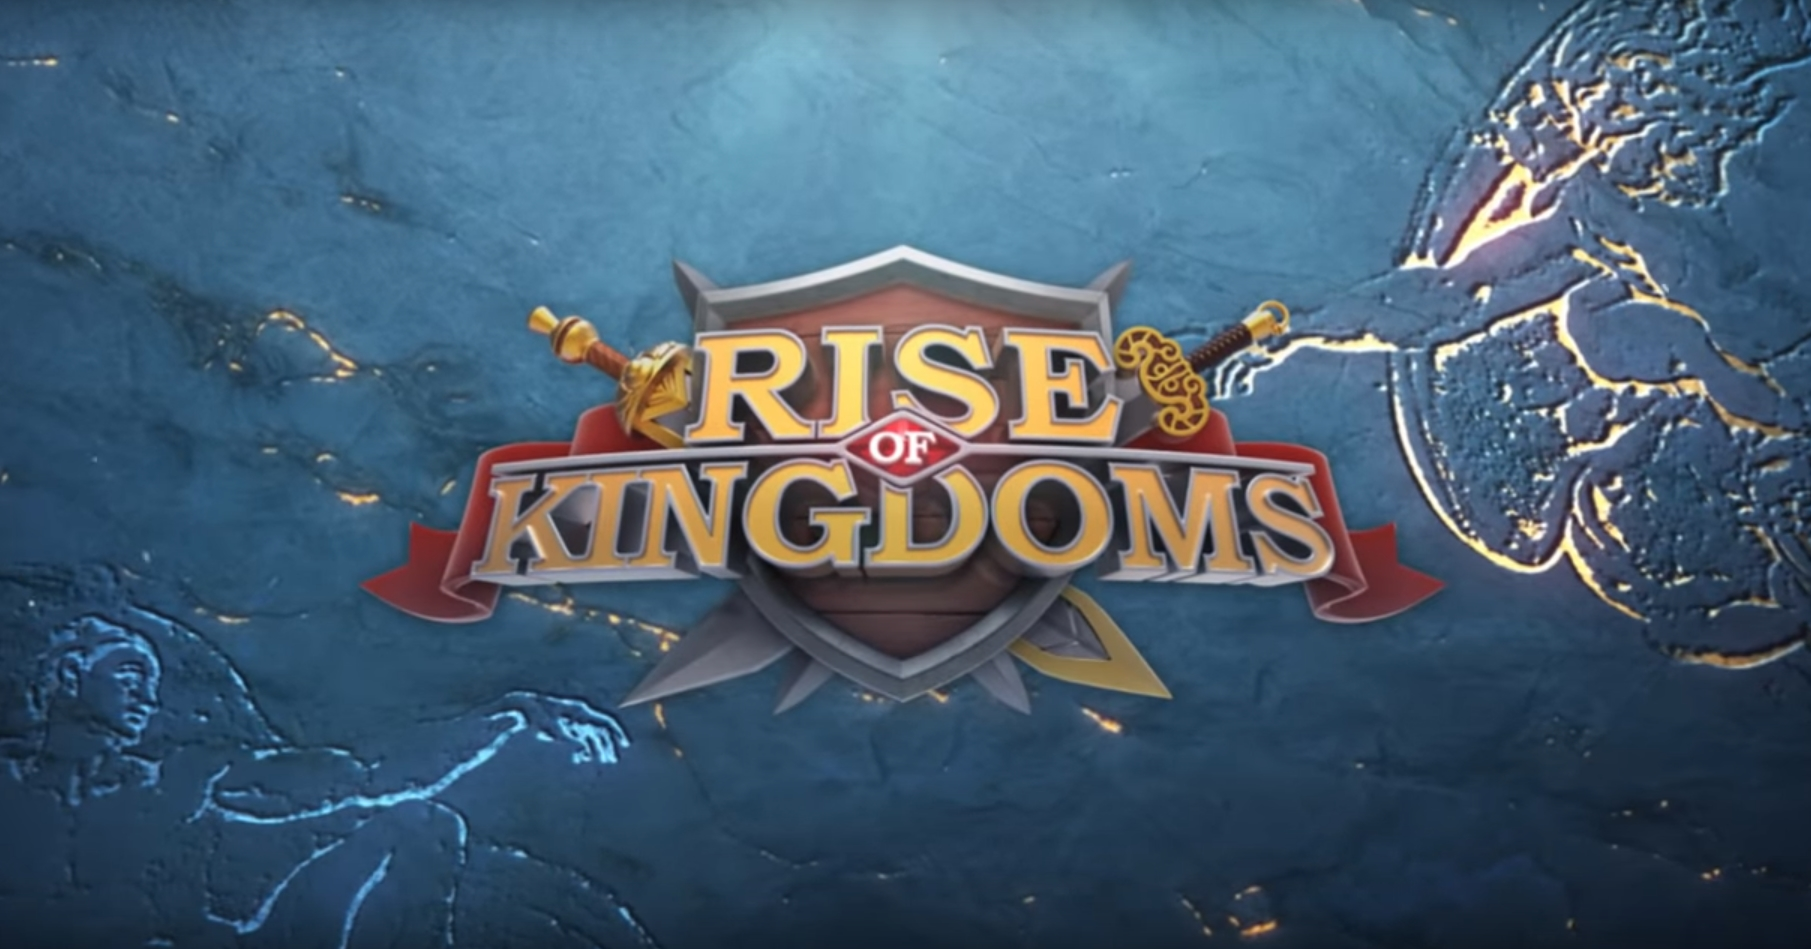 rise-of-civilizations-devient-rise-of-kingdoms